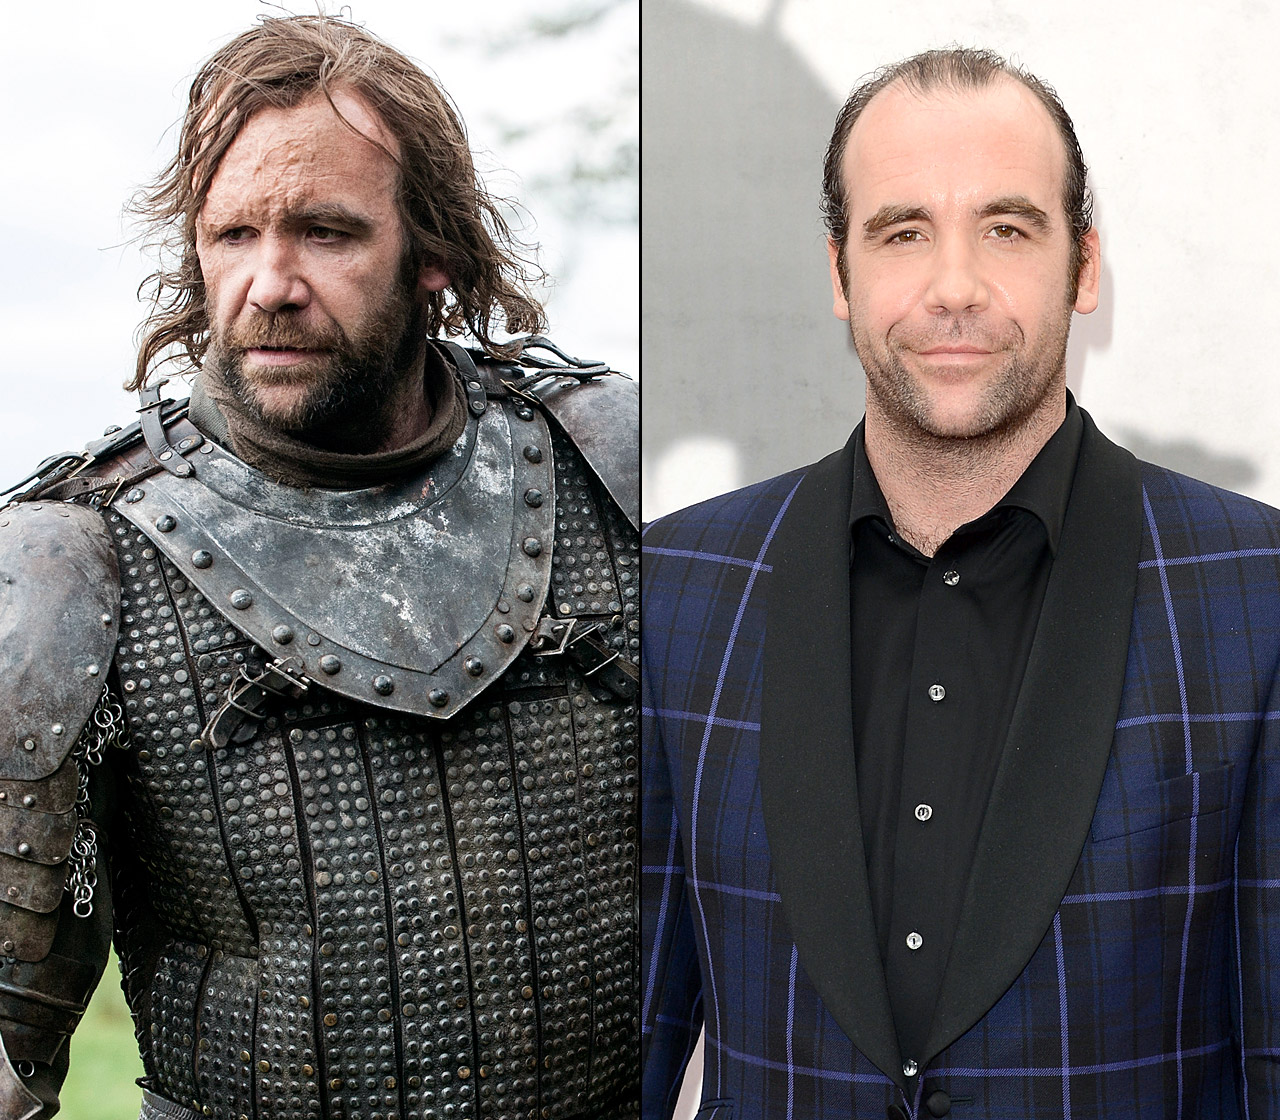 Is he good, is he bad, does the scary scar exist in real life? Sandor Clegane, nicknamed The Hound on the hit series, is known for his brutality in service to the Lannisters.